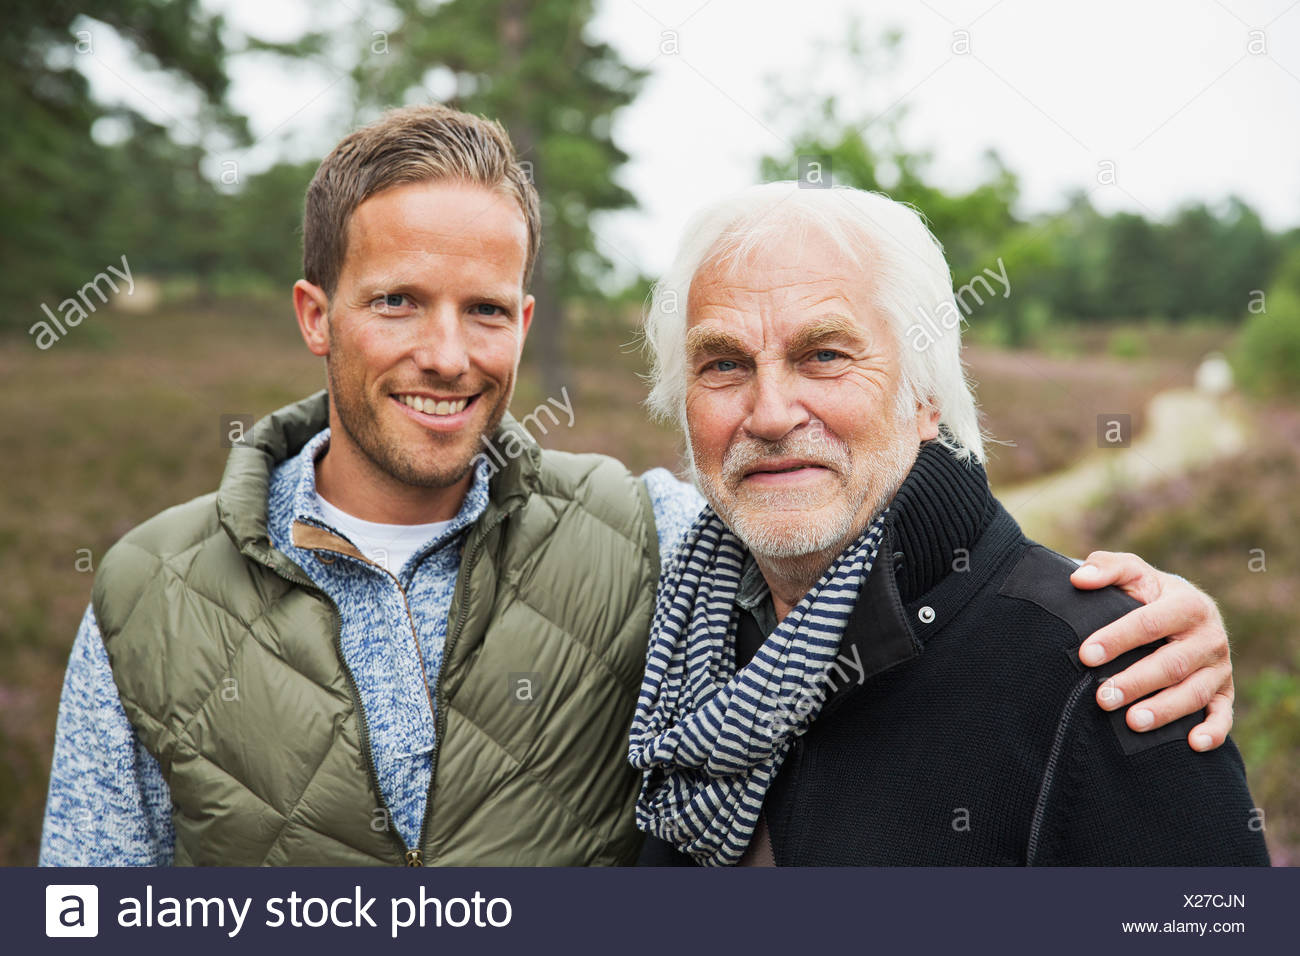 Portrait of father and adult son, smiling - Stock Image